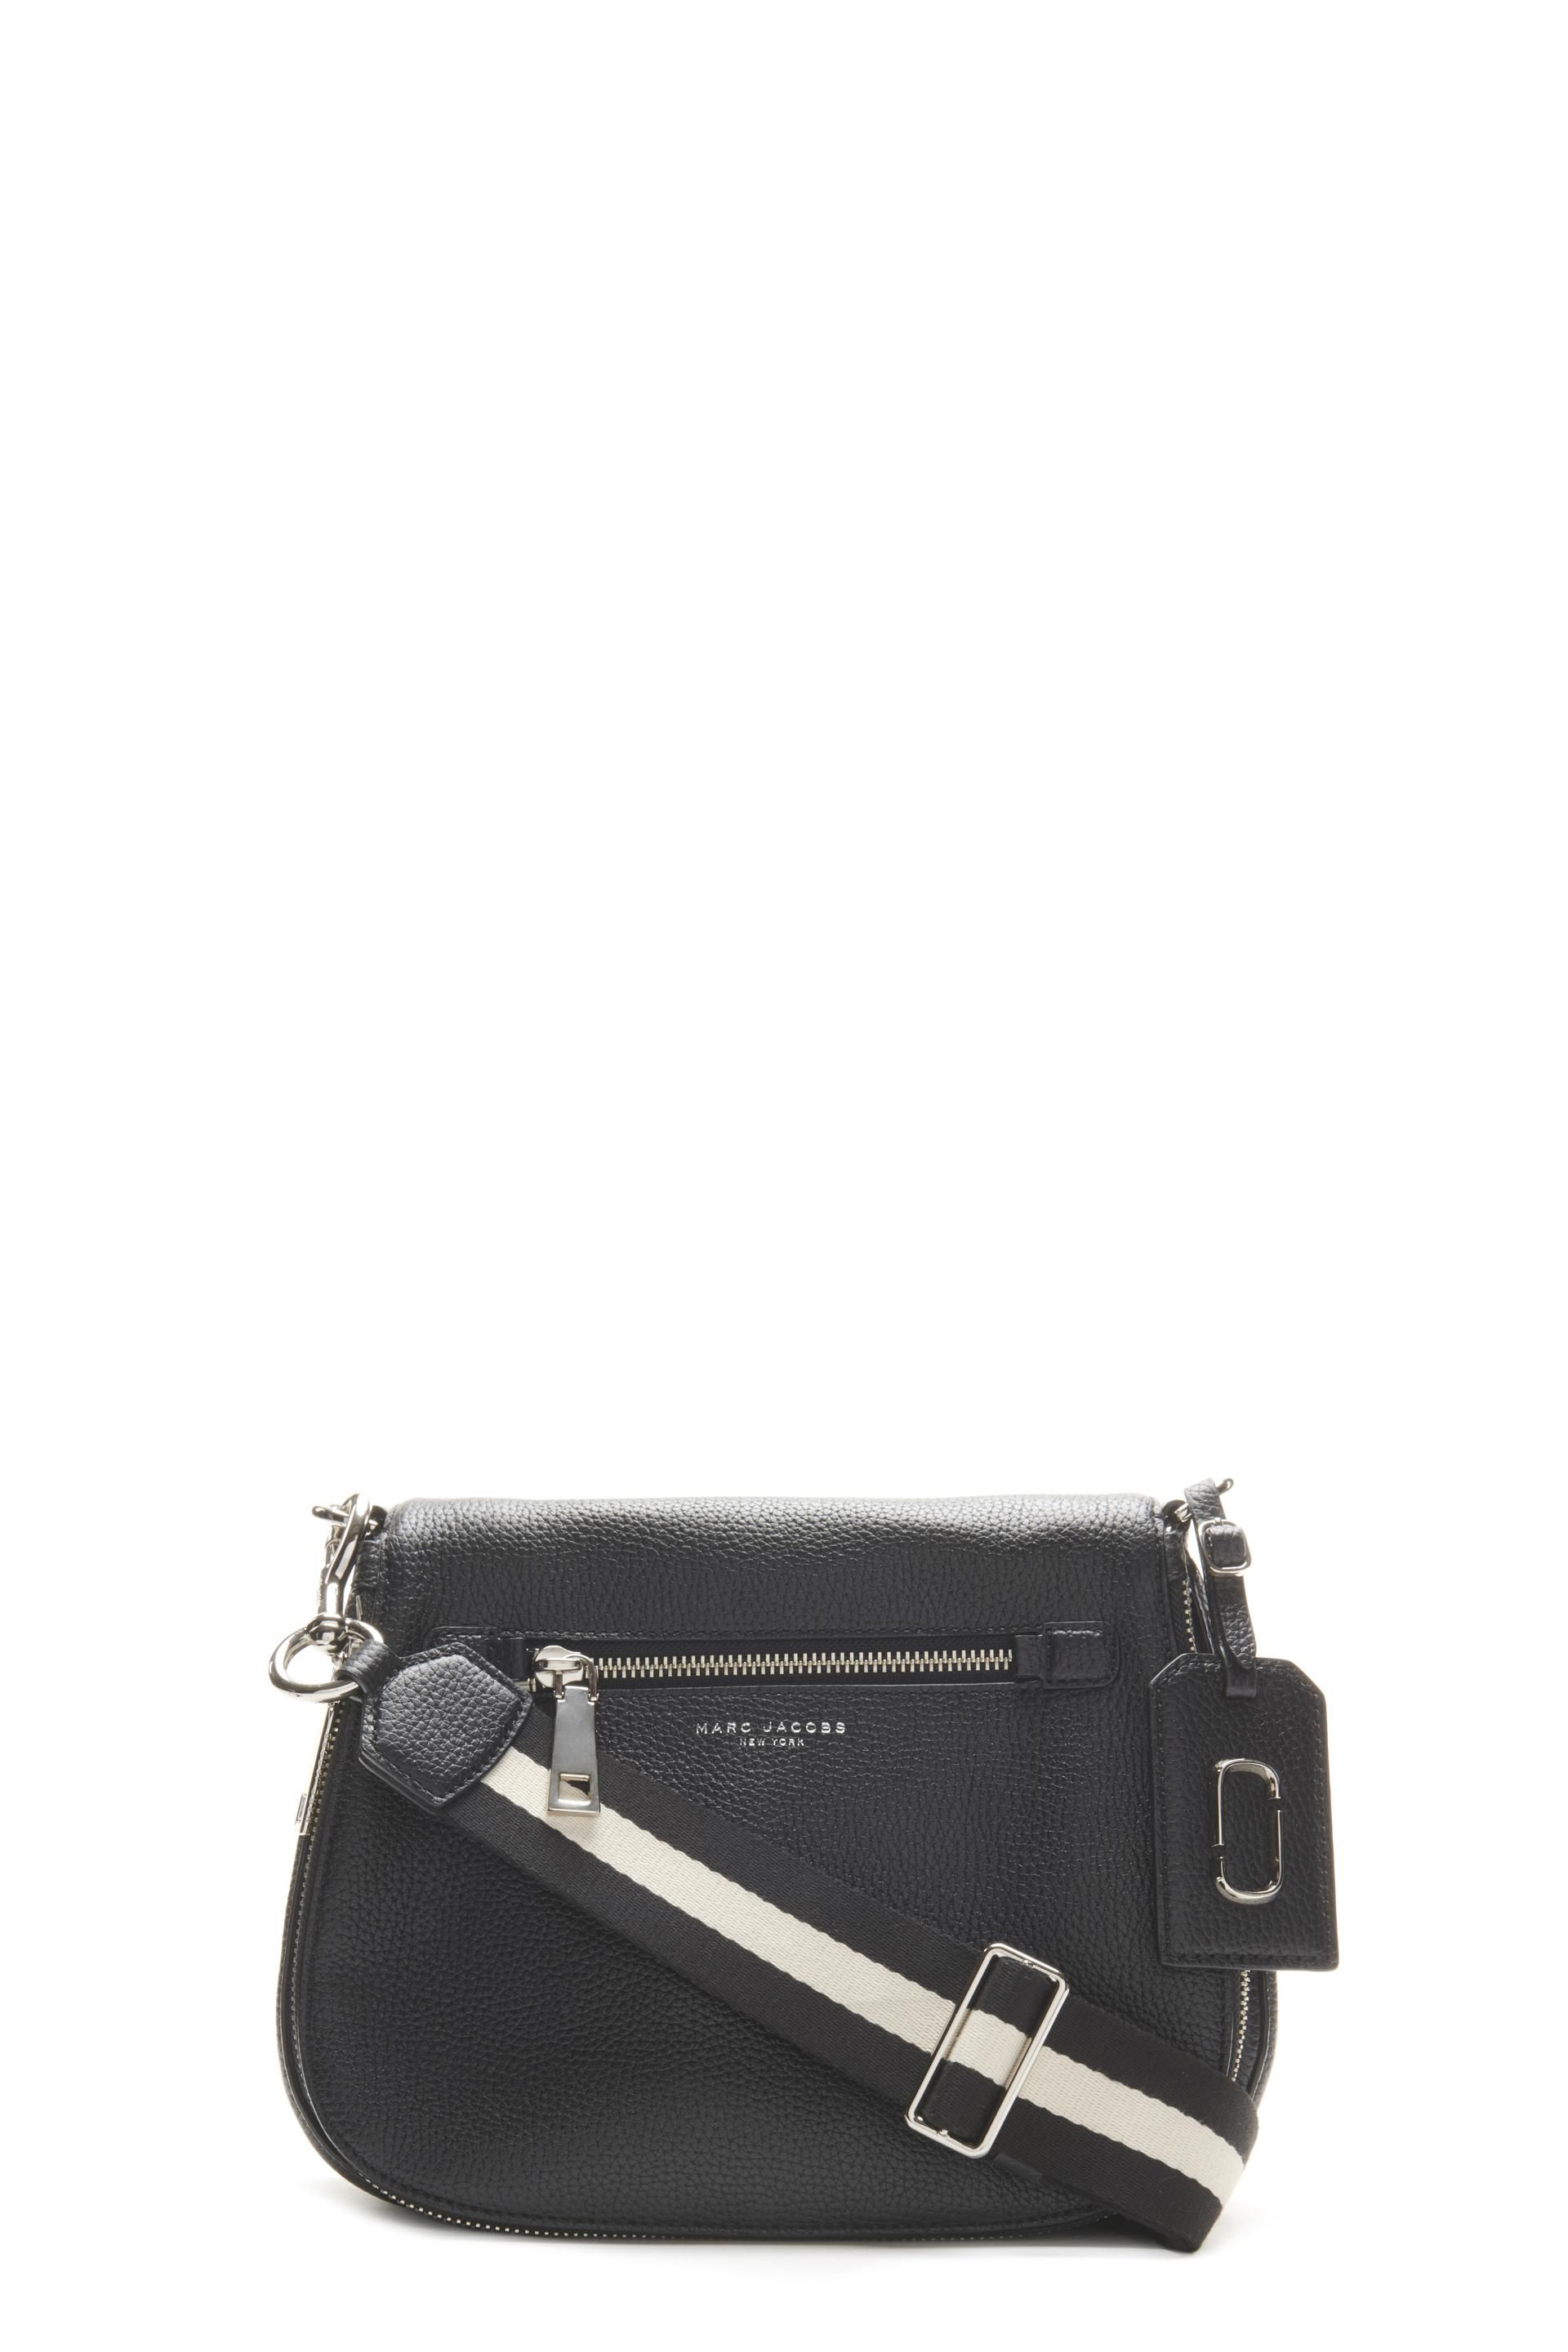 MARC JACOBS Recruit Small Saddle Bag With Guitar Strap in Black ... 858444a79210